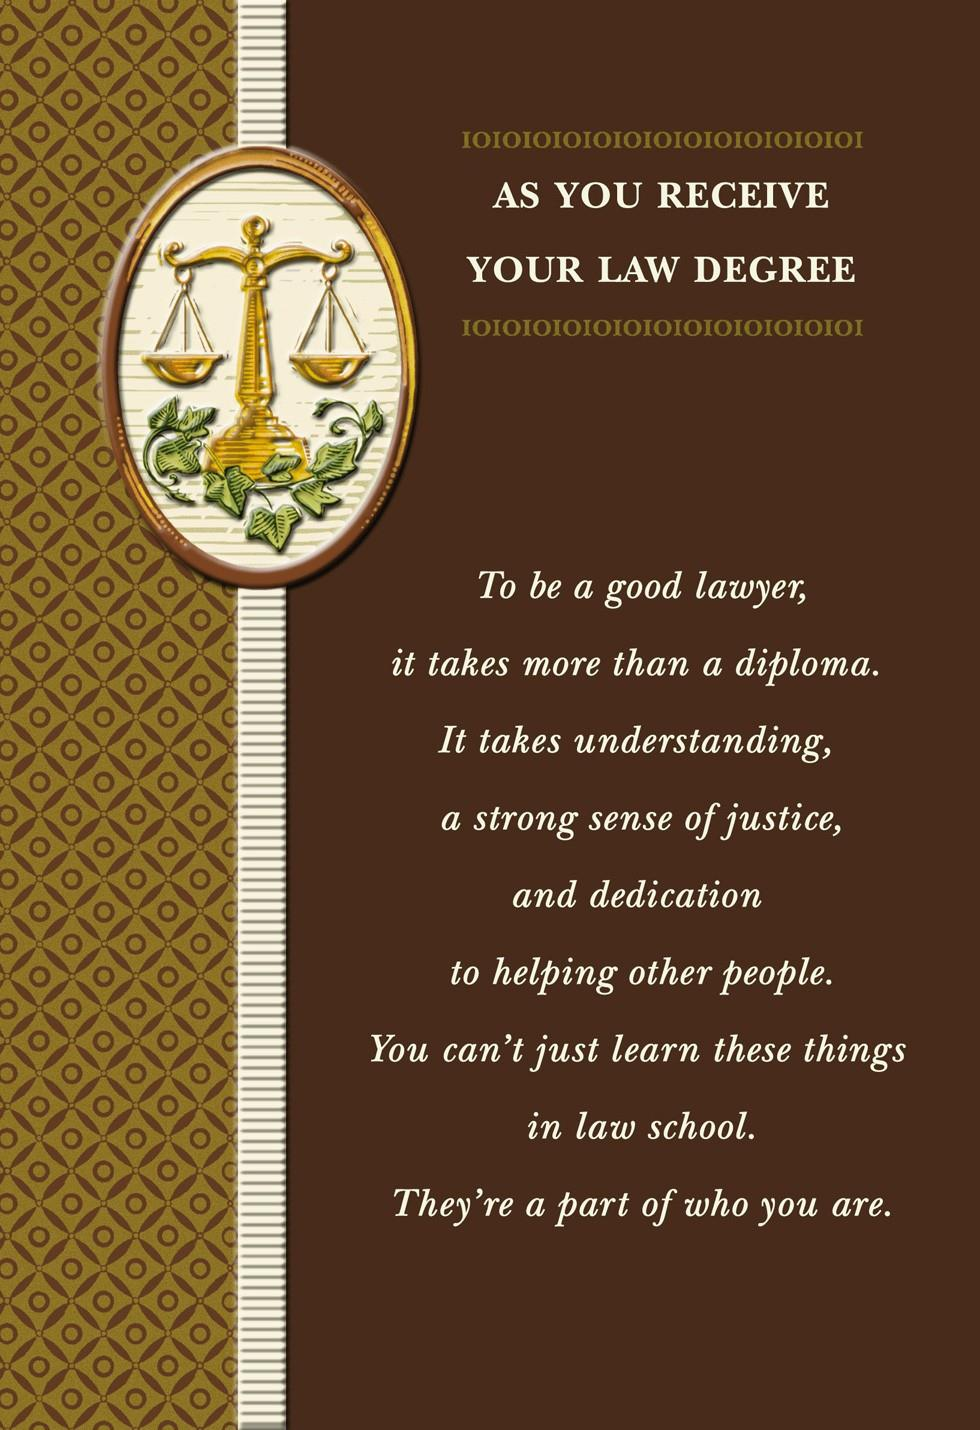 Law Degree Graduation Card Greeting Cards Hallmark